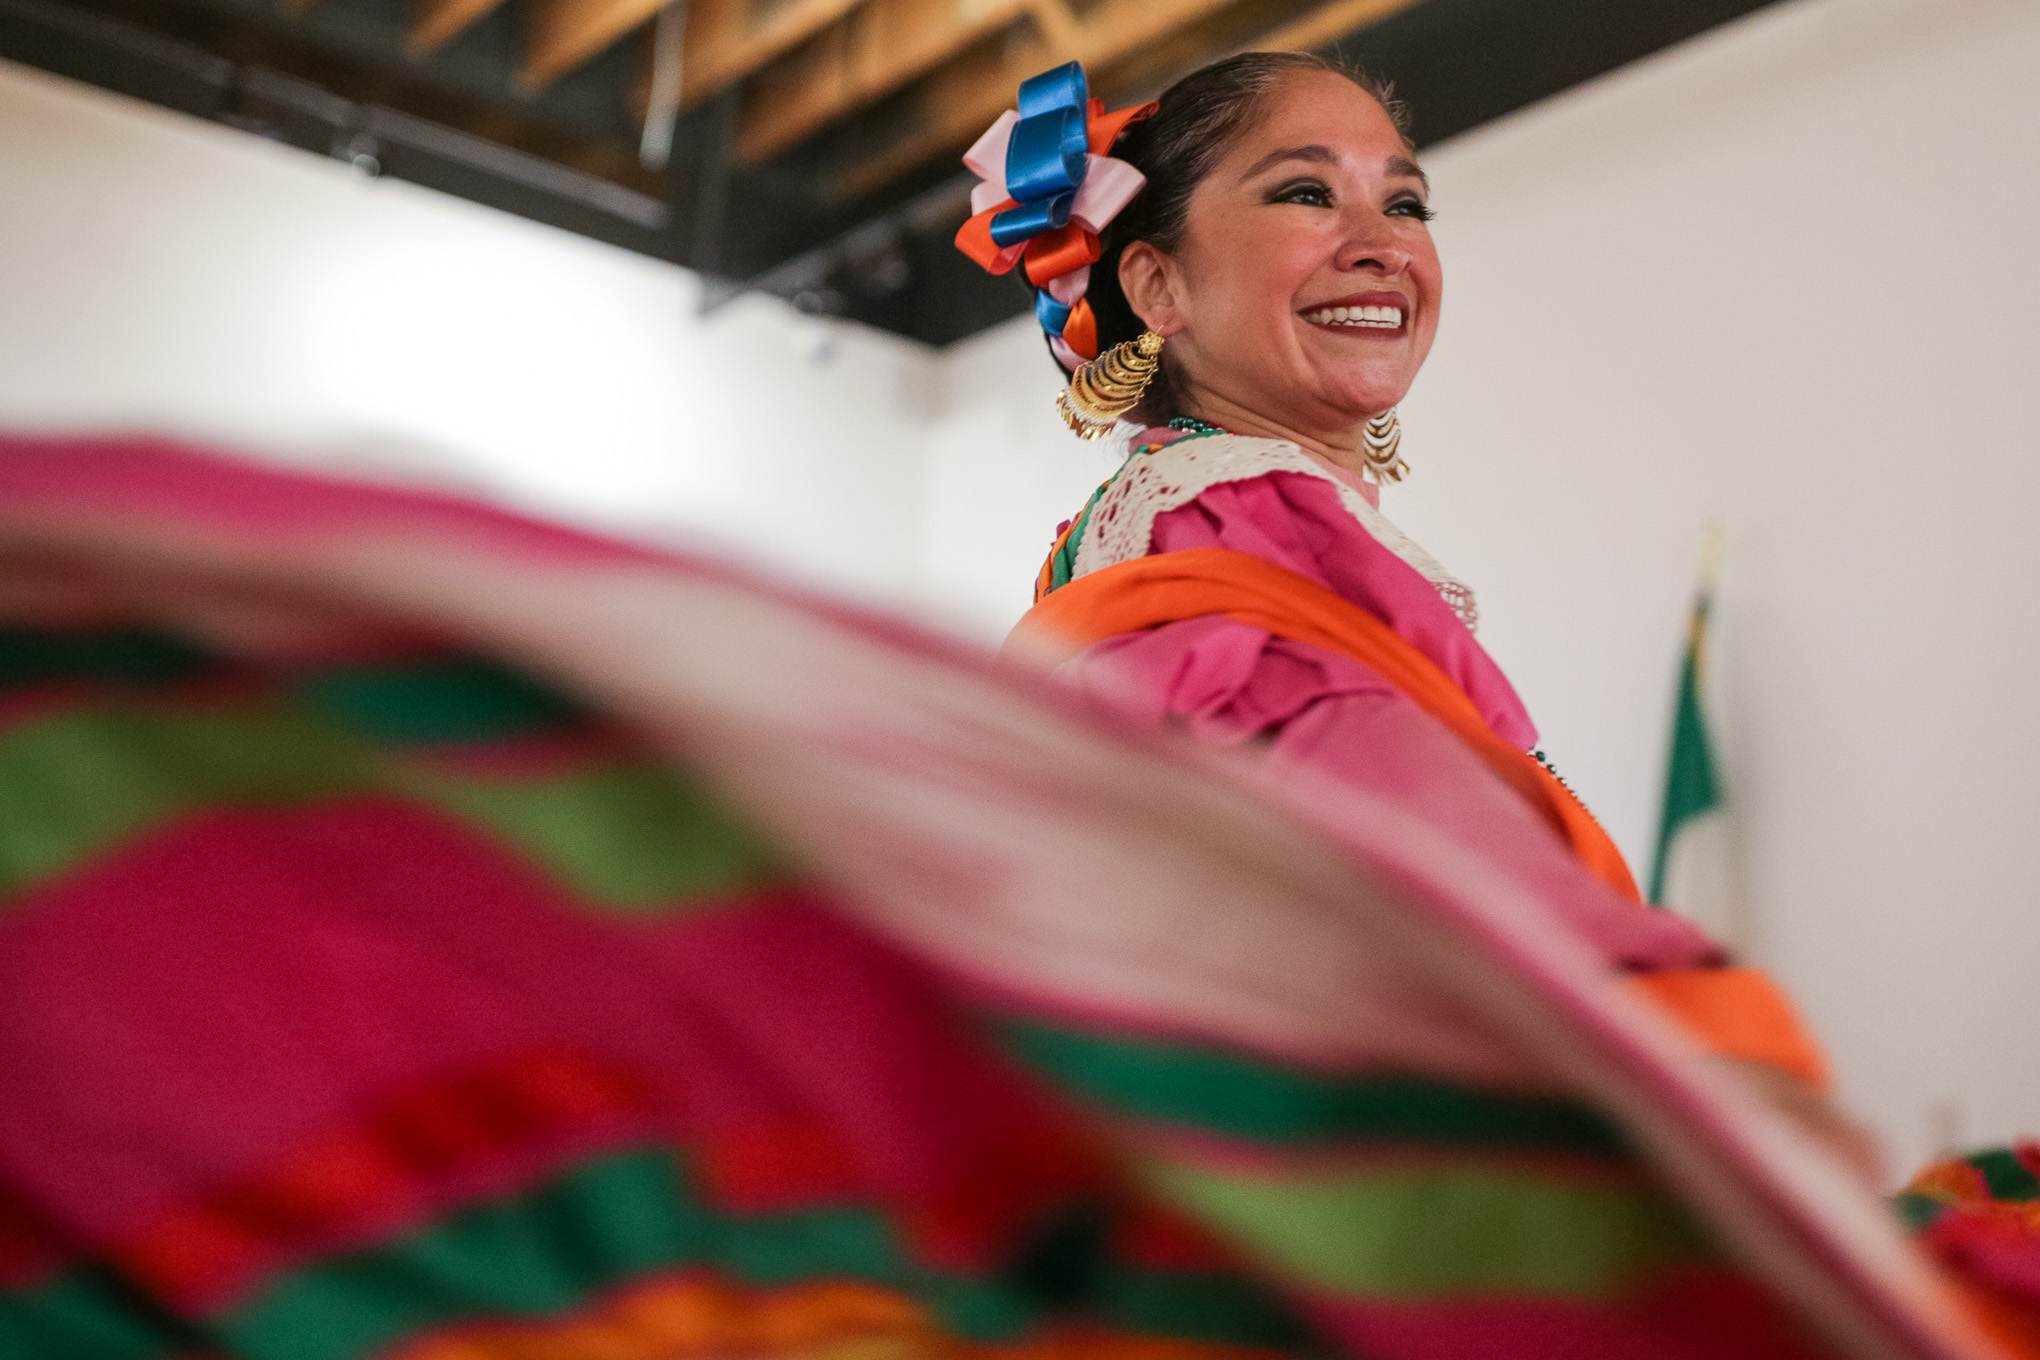 Guadalupe Dance Company dancer Denise Rios.